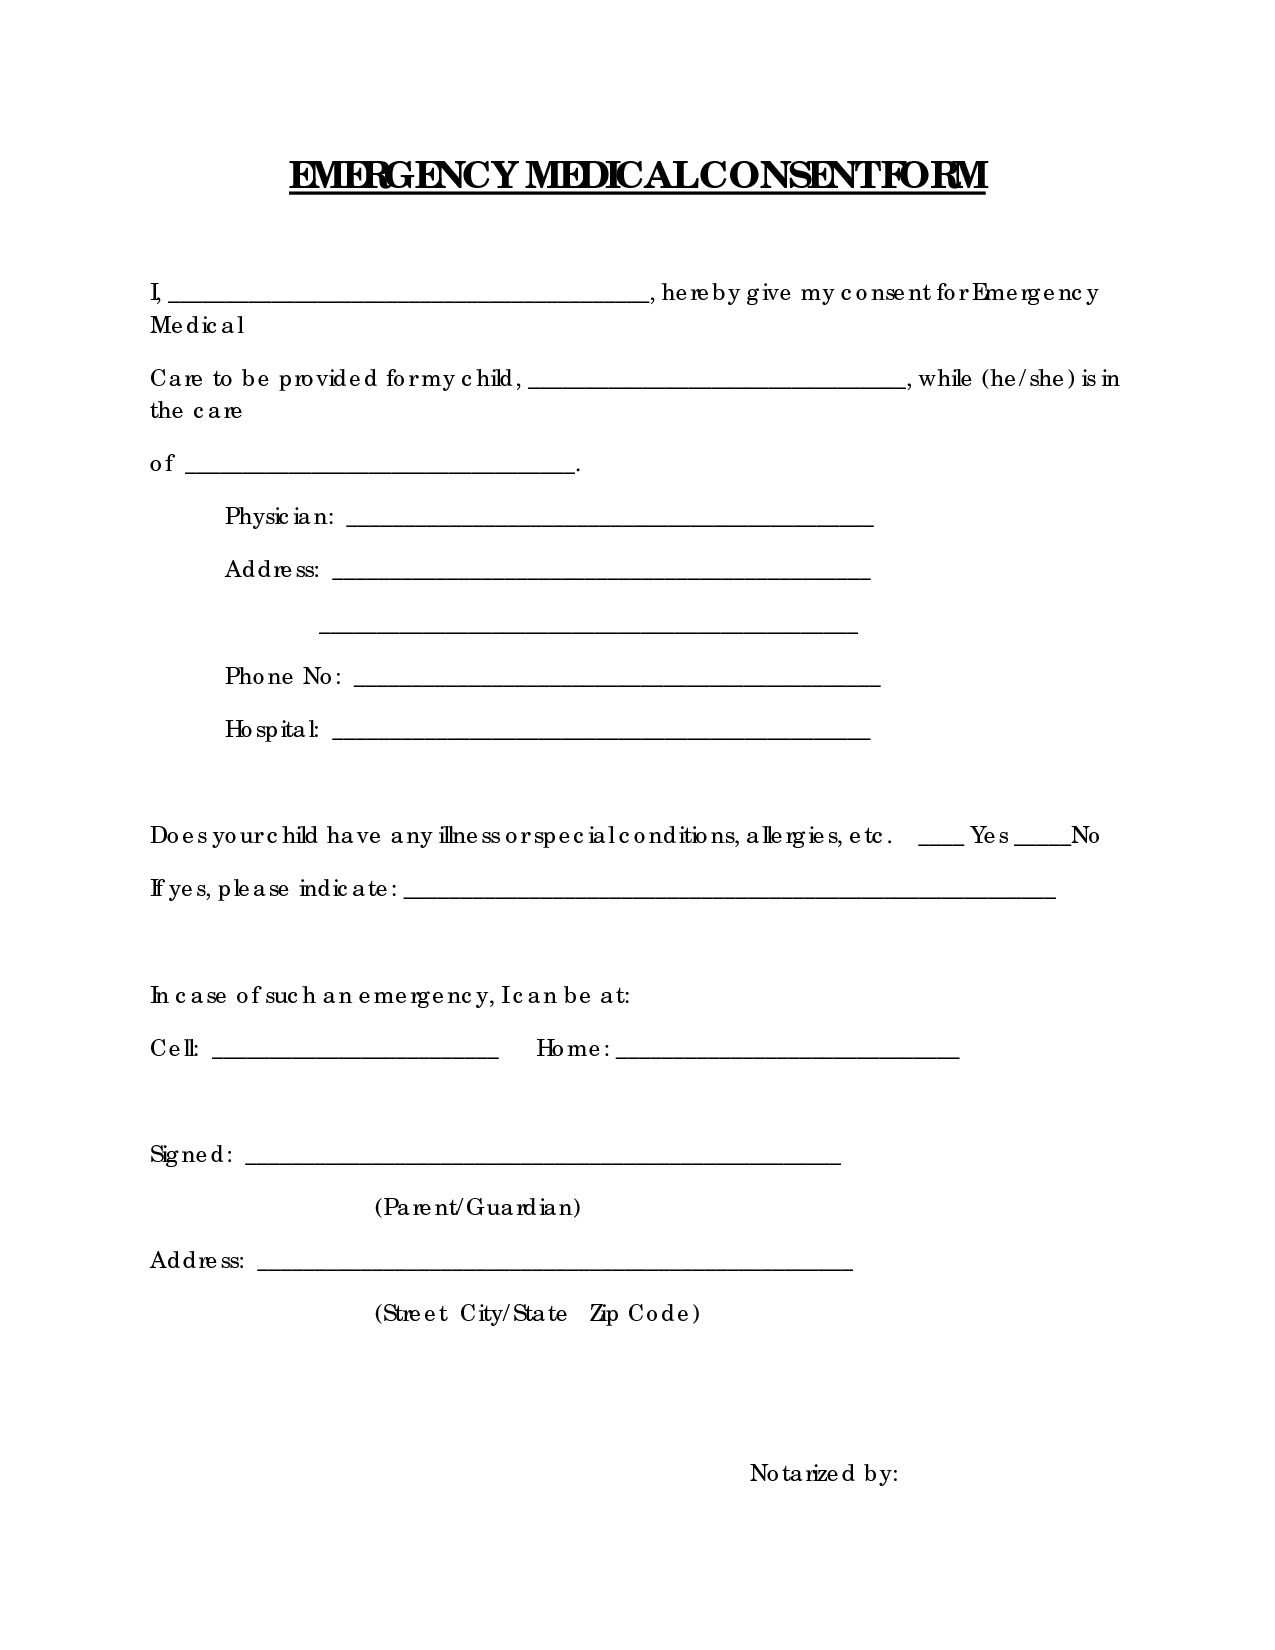 Free Printable Medical Consent Form | Emergency Medical Consent Form - Free Printable Medical Consent Form